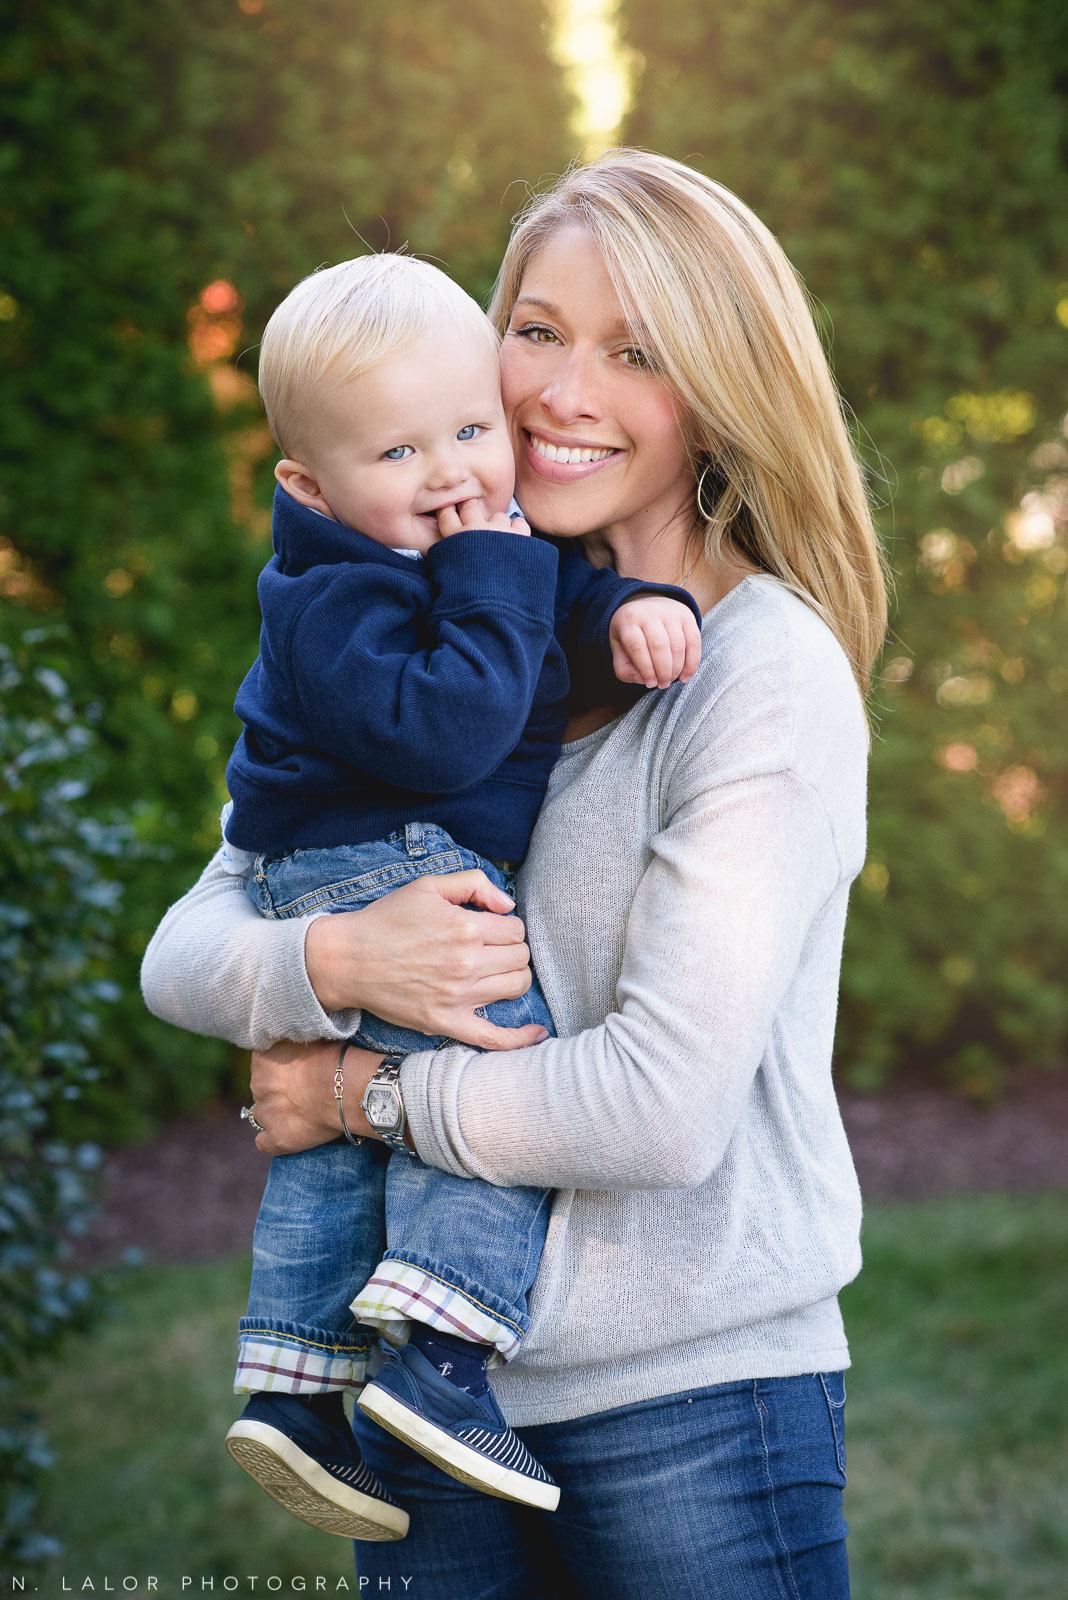 Beautiful Mom with her 1-year old Son. Backyard lifestyle portrait by N. Lalor Photography. Fairfield, CT.